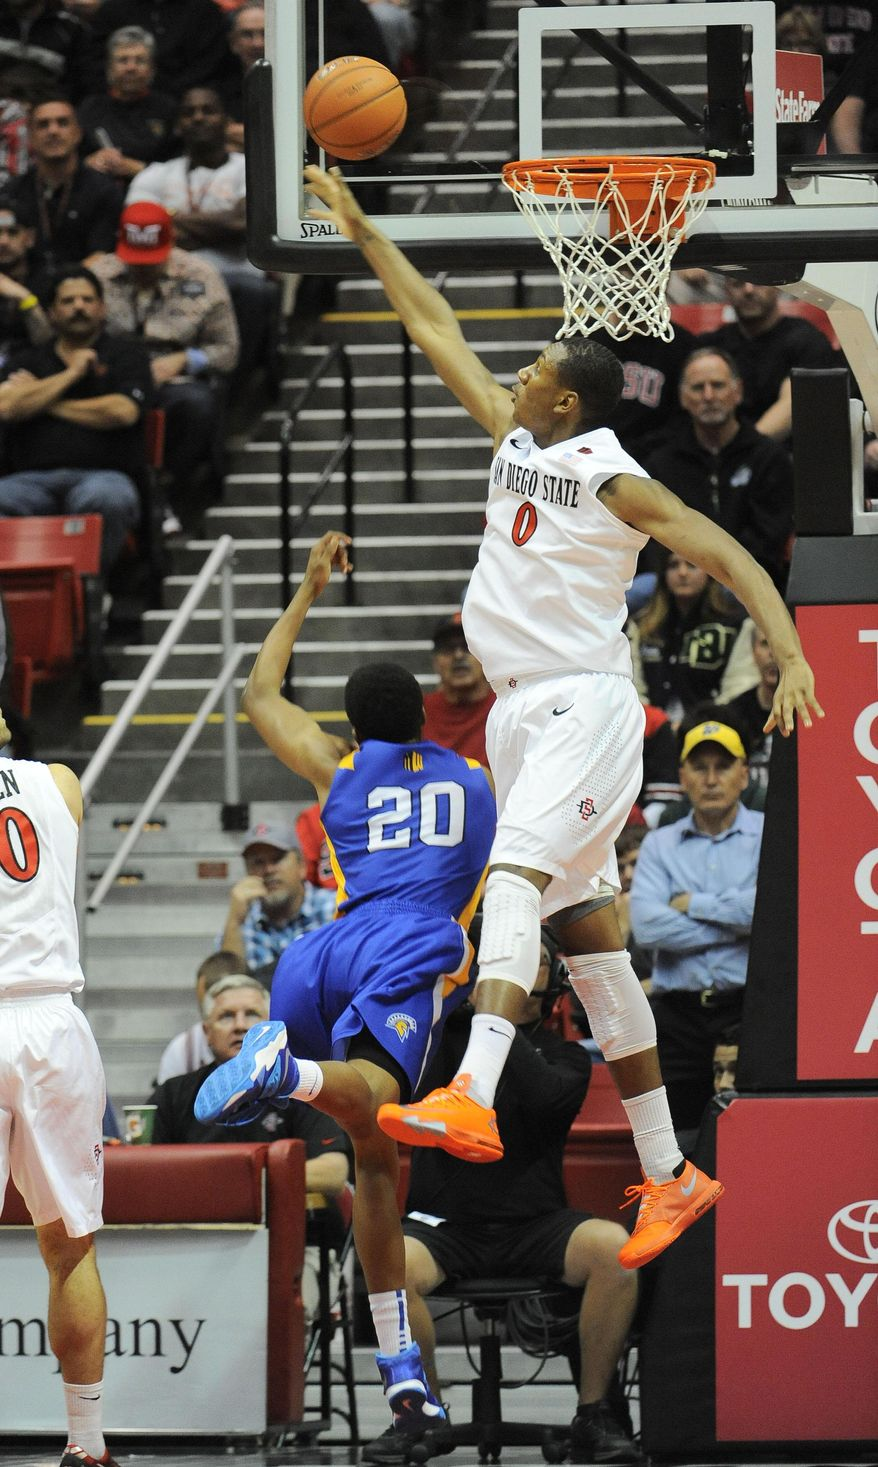 San Diego State's Skylar Spencer (0) blocks a shot by San Jose State's Issac Thornton (20) during the first half of an NCAA college basketball game on Tuesday, Feb. 25, 2014, in San Diego. (AP Photo/Denis Poroy)